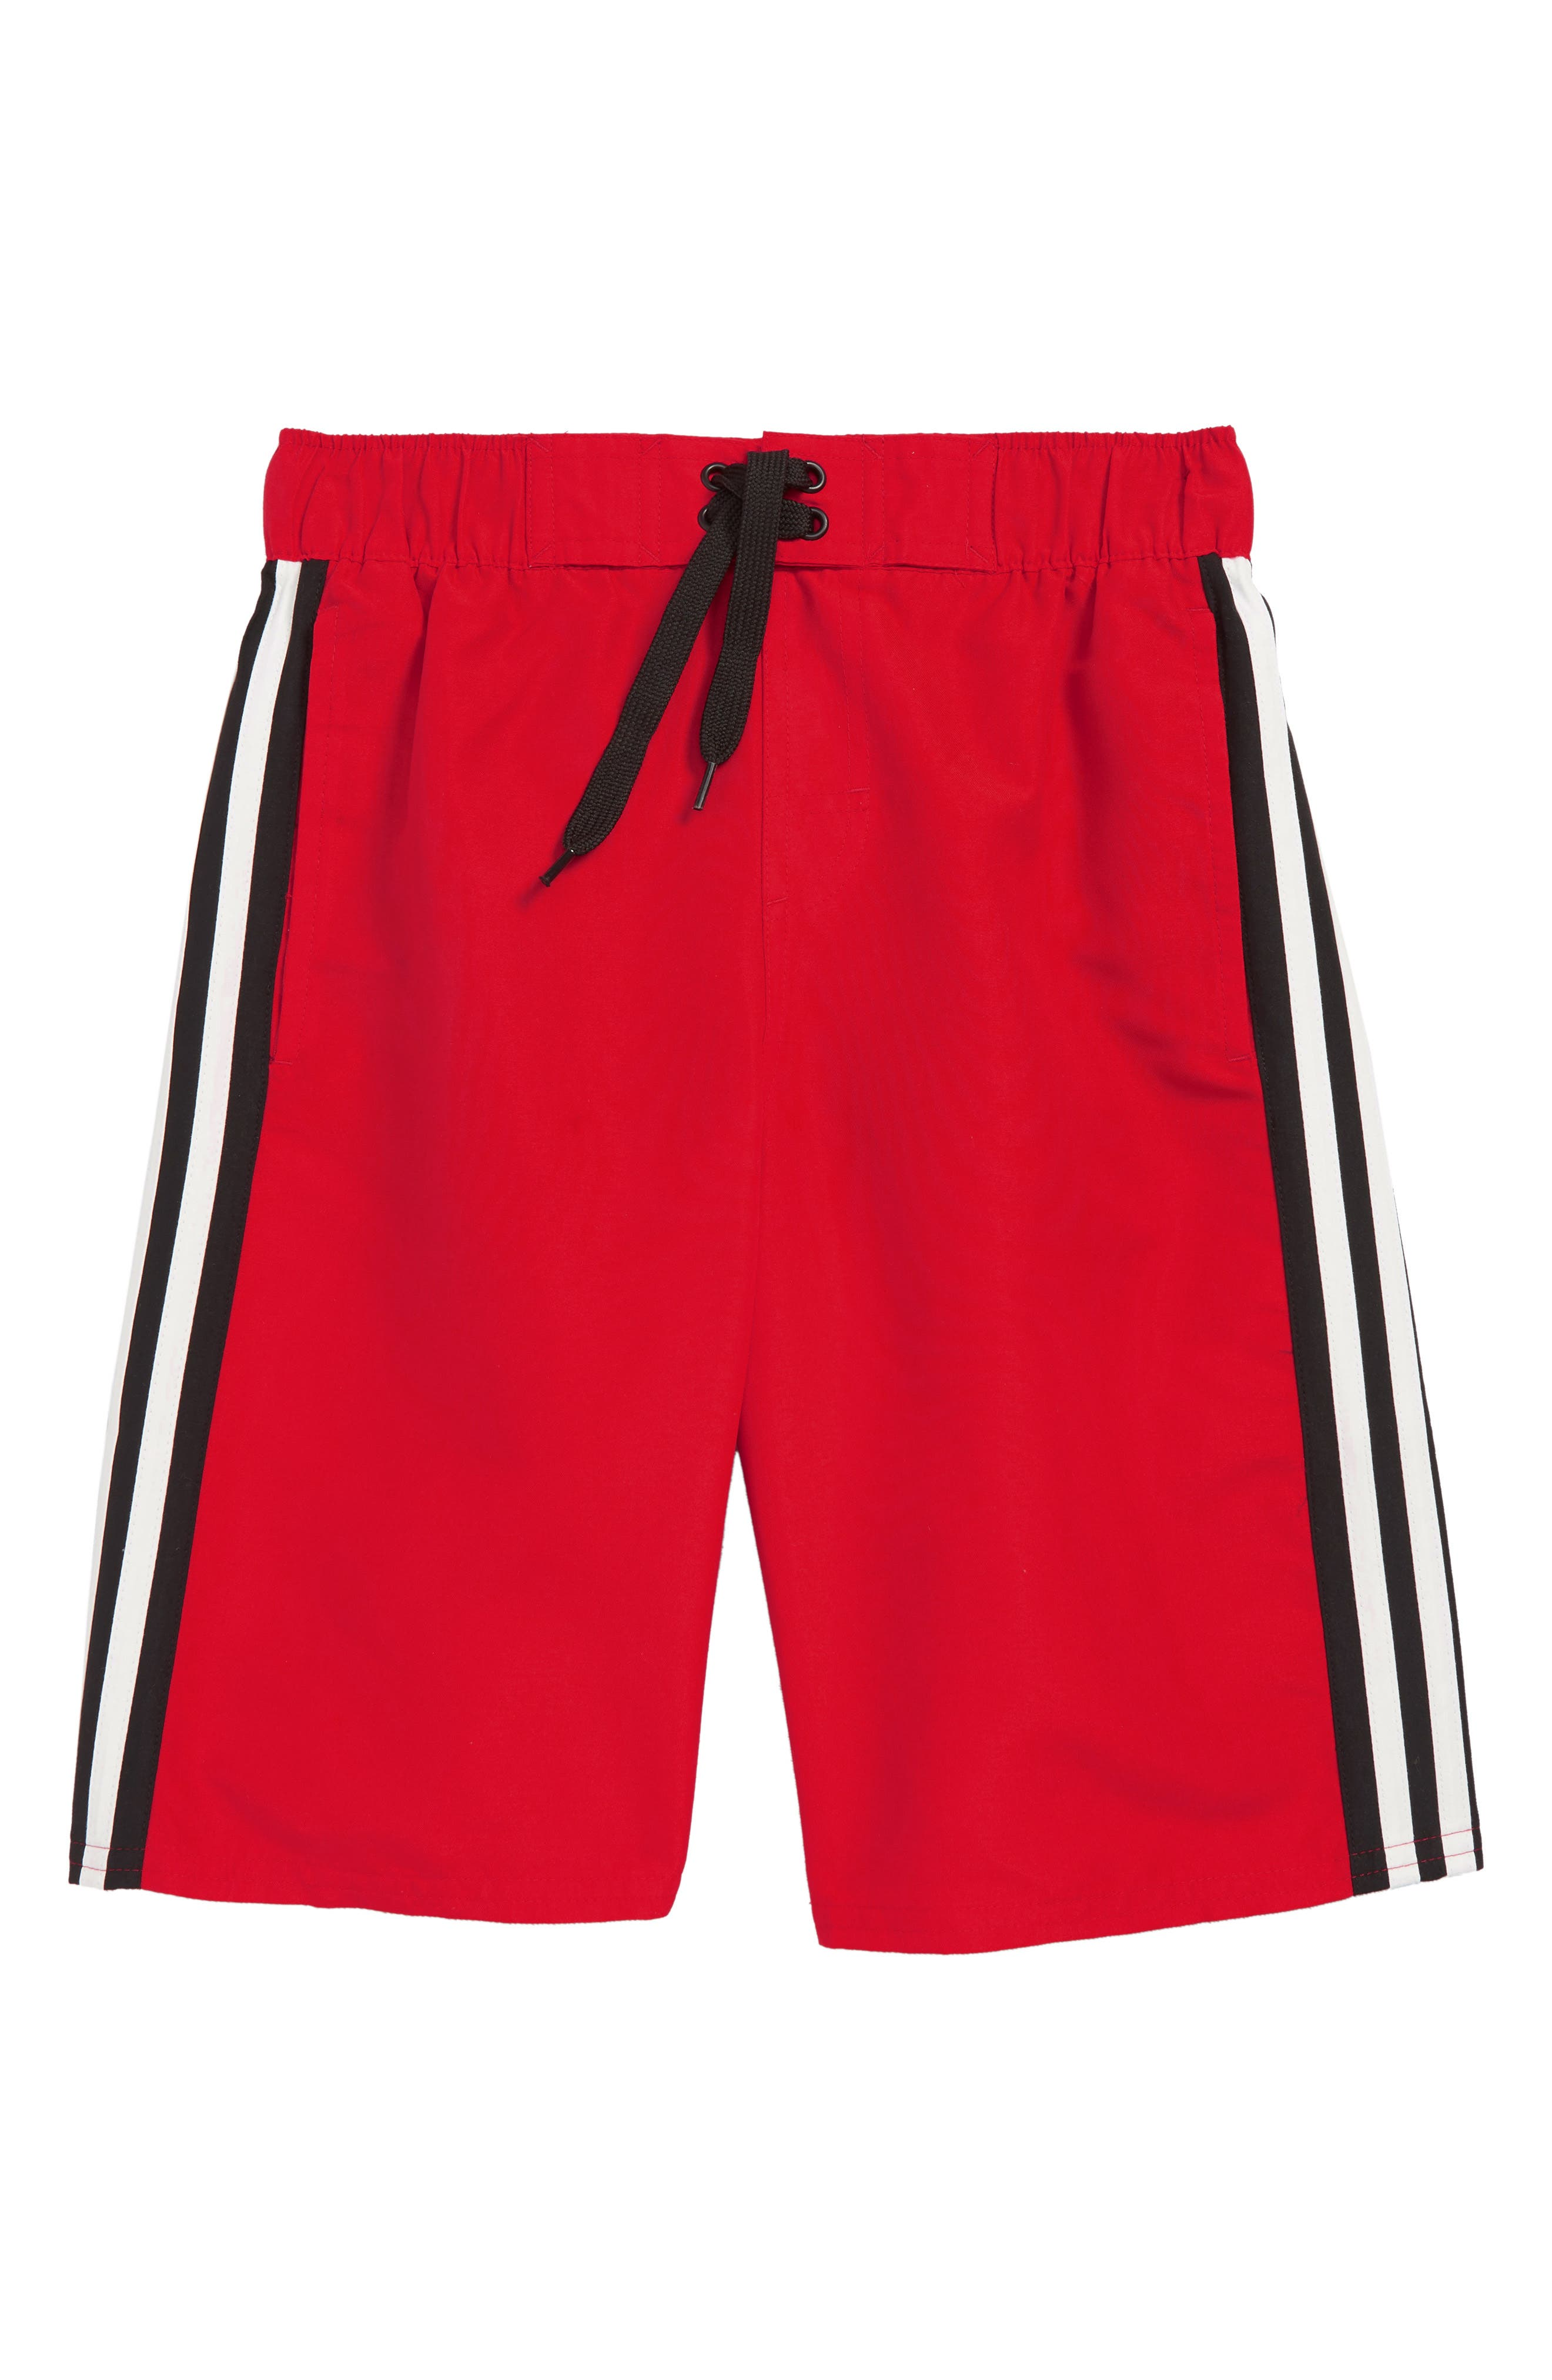 ADIDAS ORIGINALS,                             Iconic 3.0 Volley Swim Trunks,                             Main thumbnail 1, color,                             RED